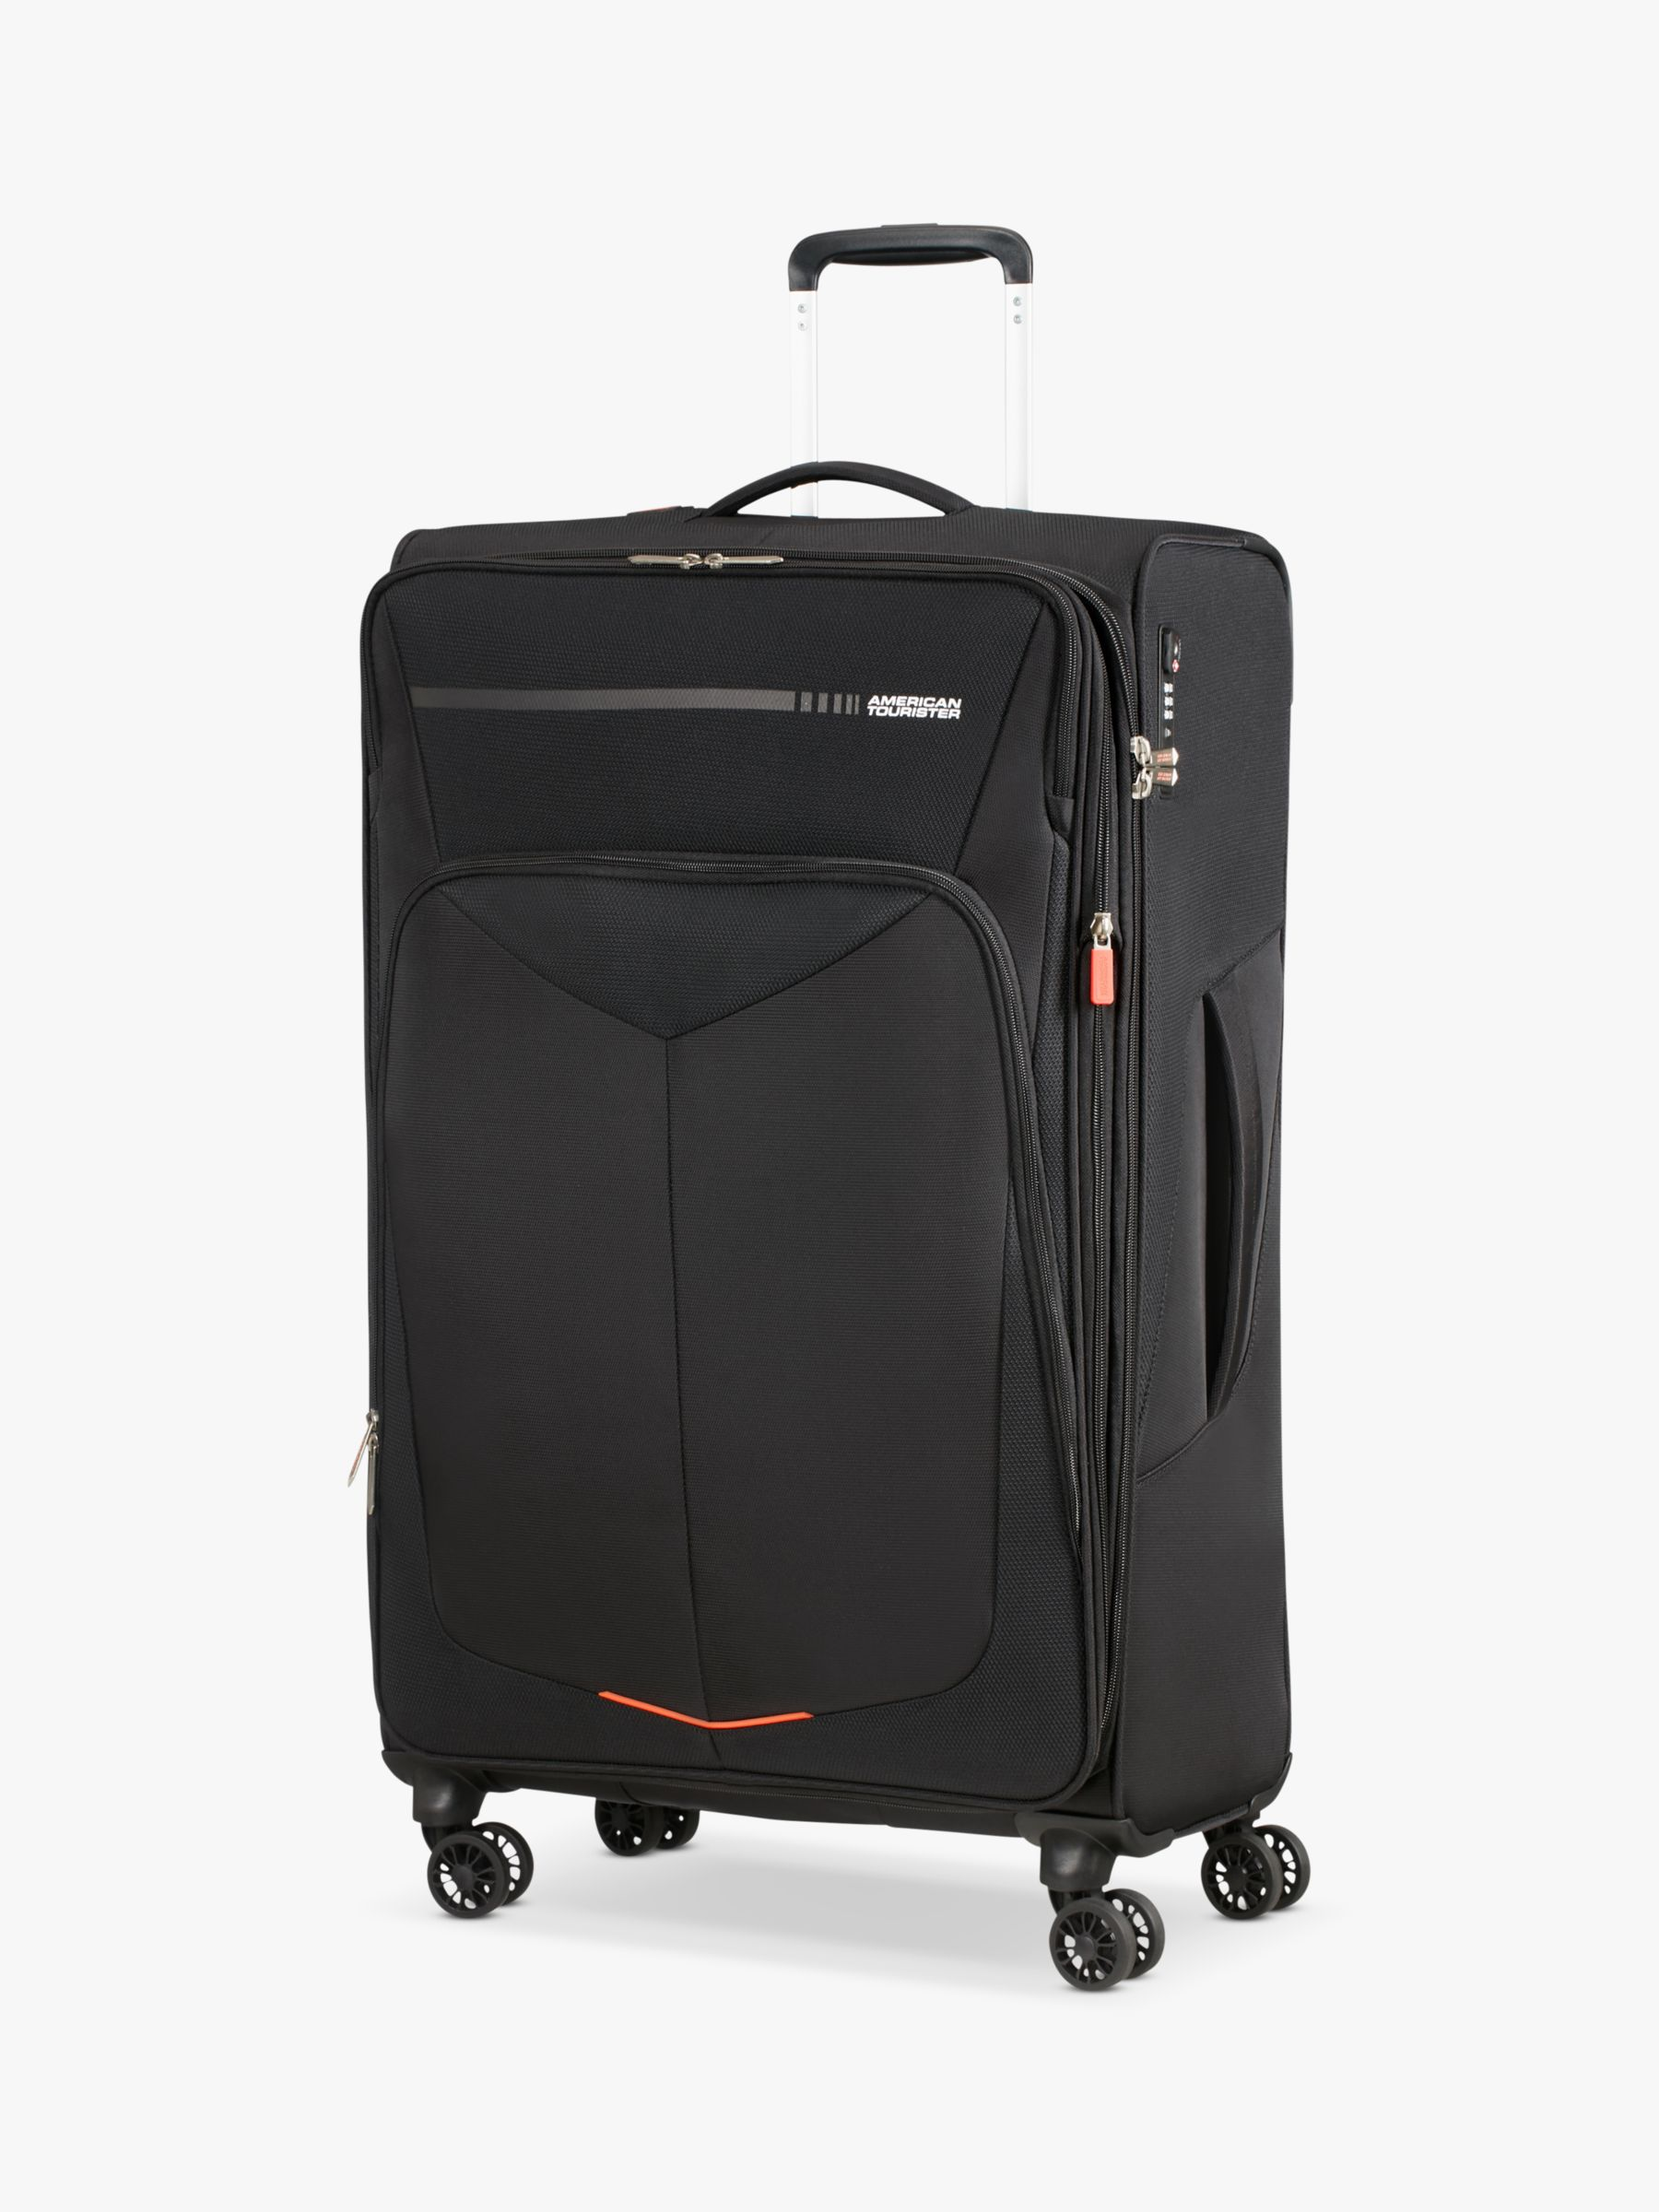 American Tourister American Tourister Summer Funk 4-Spinner 79cm Large Case